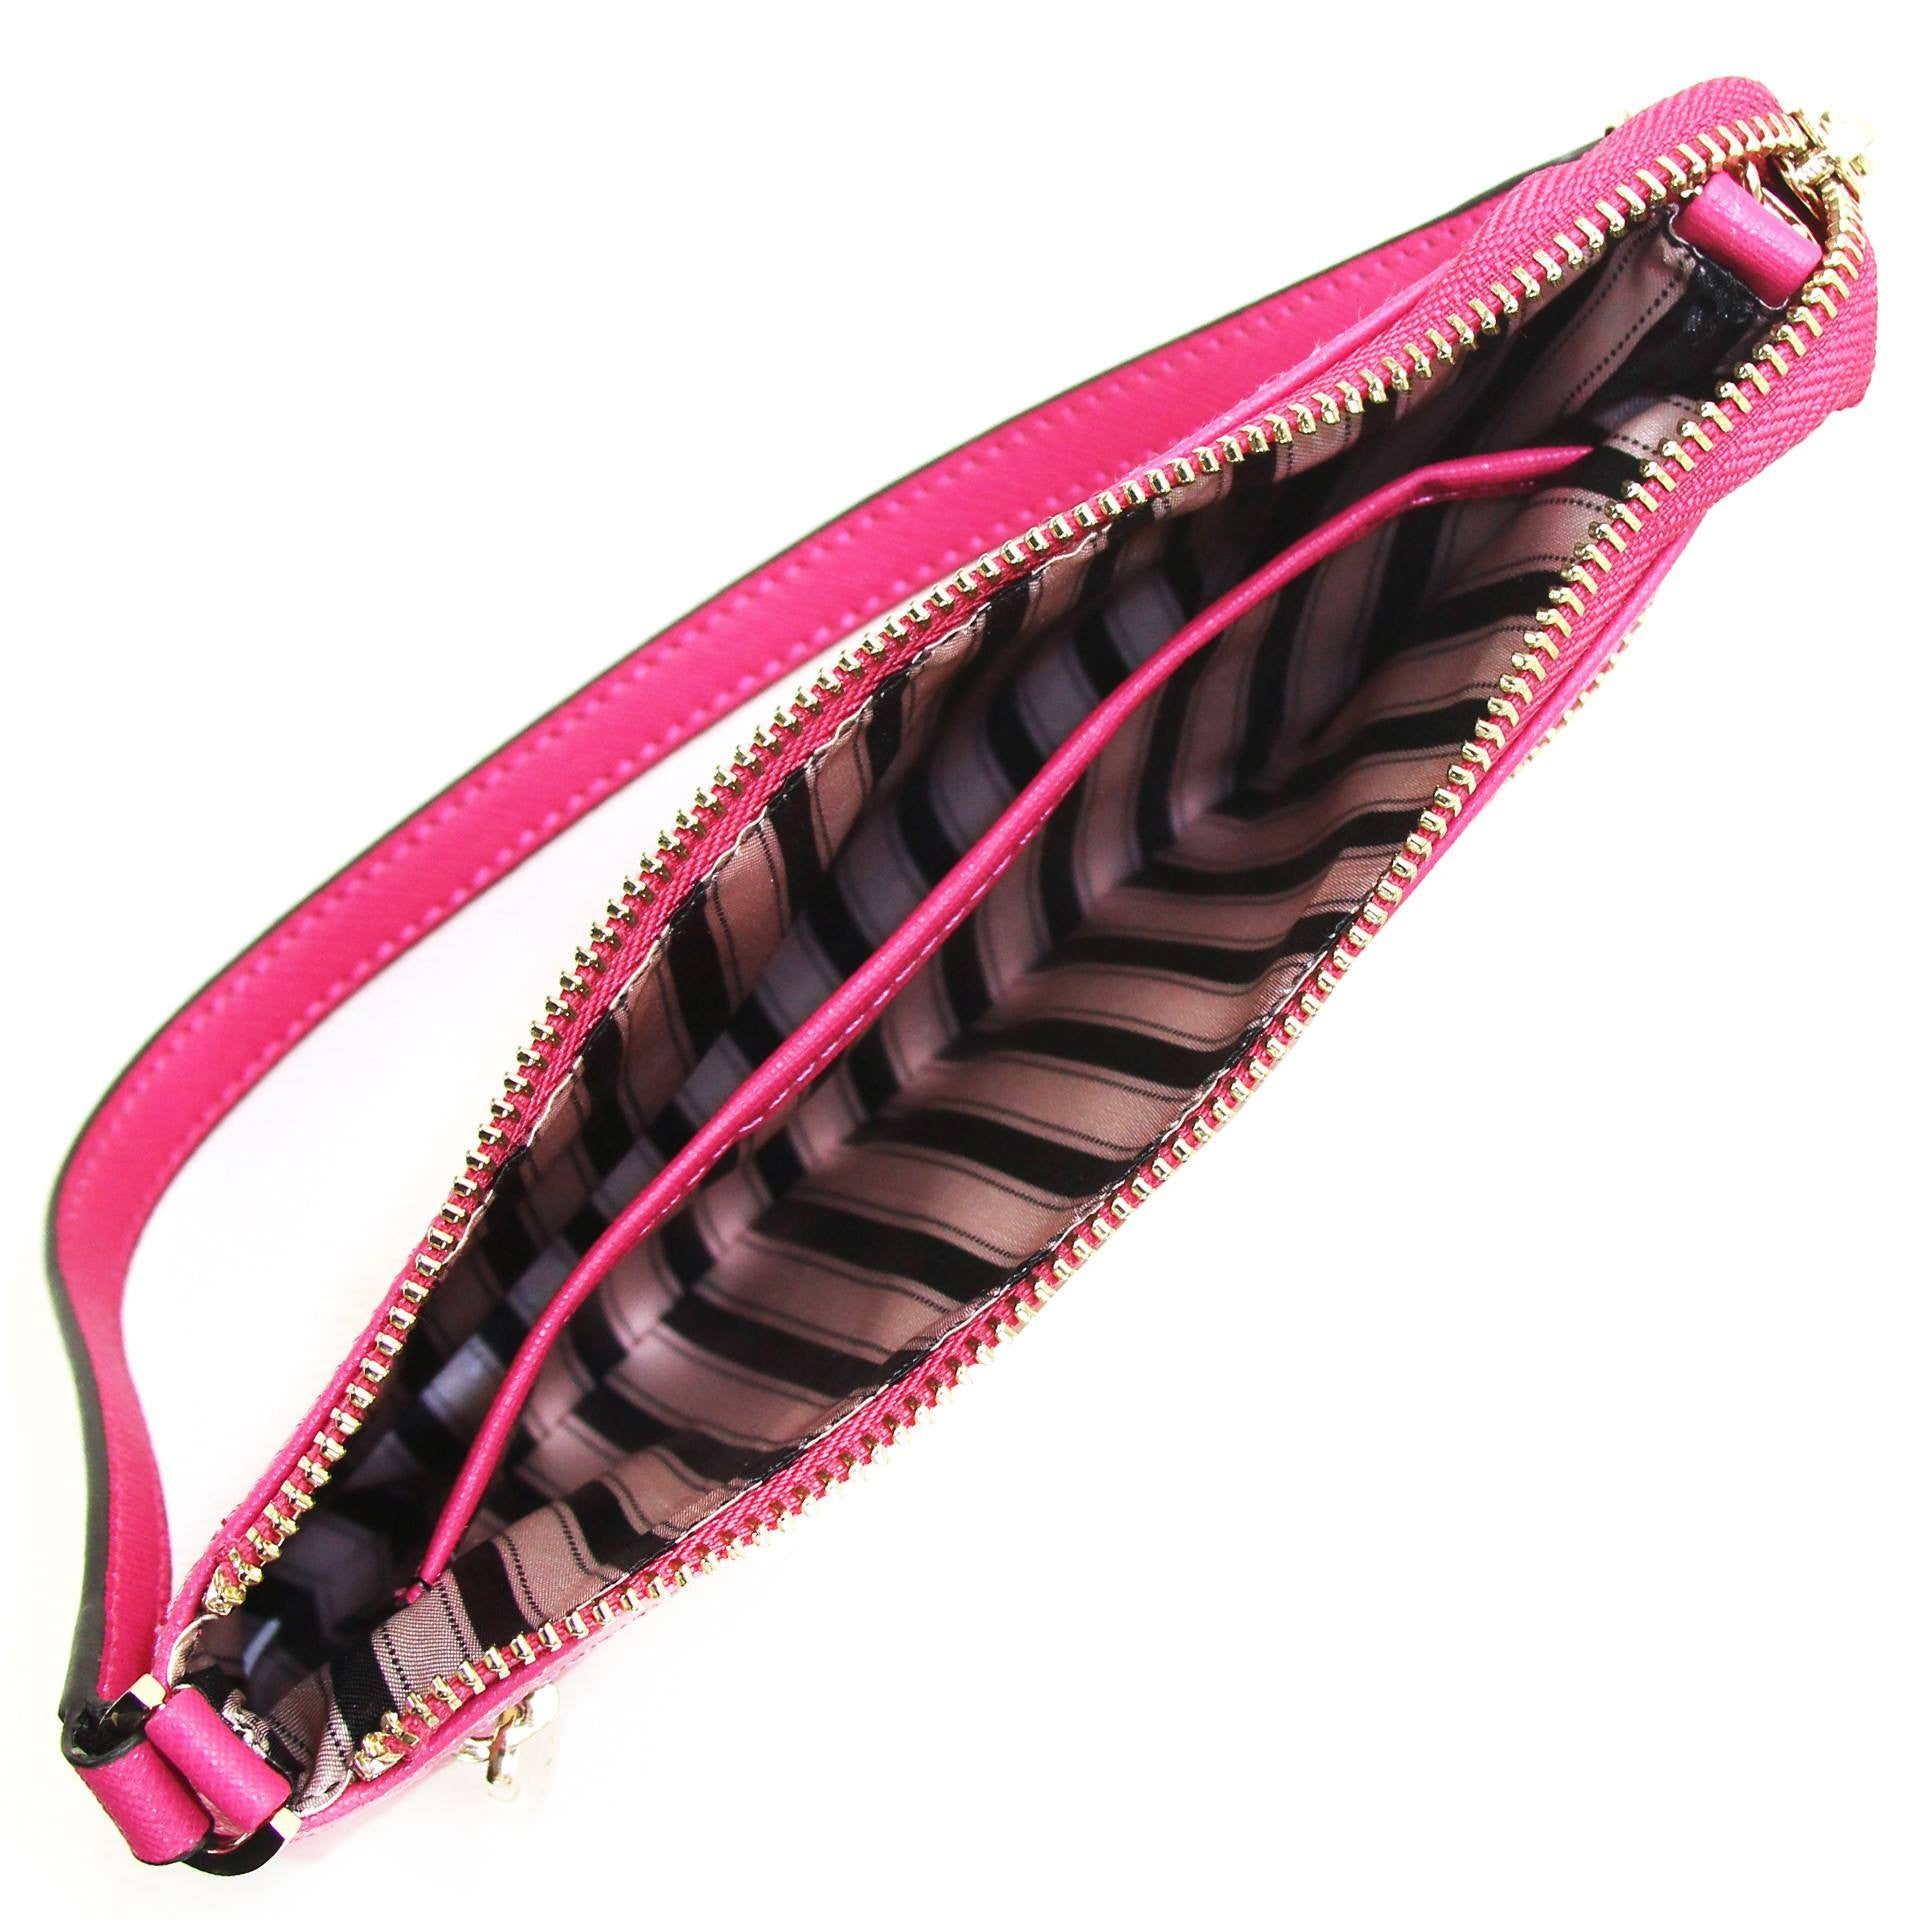 Wallet, Wristlet - Robert Matthew Sofia 24K Gold Leather Shoulder Clutch - Pink Ruby